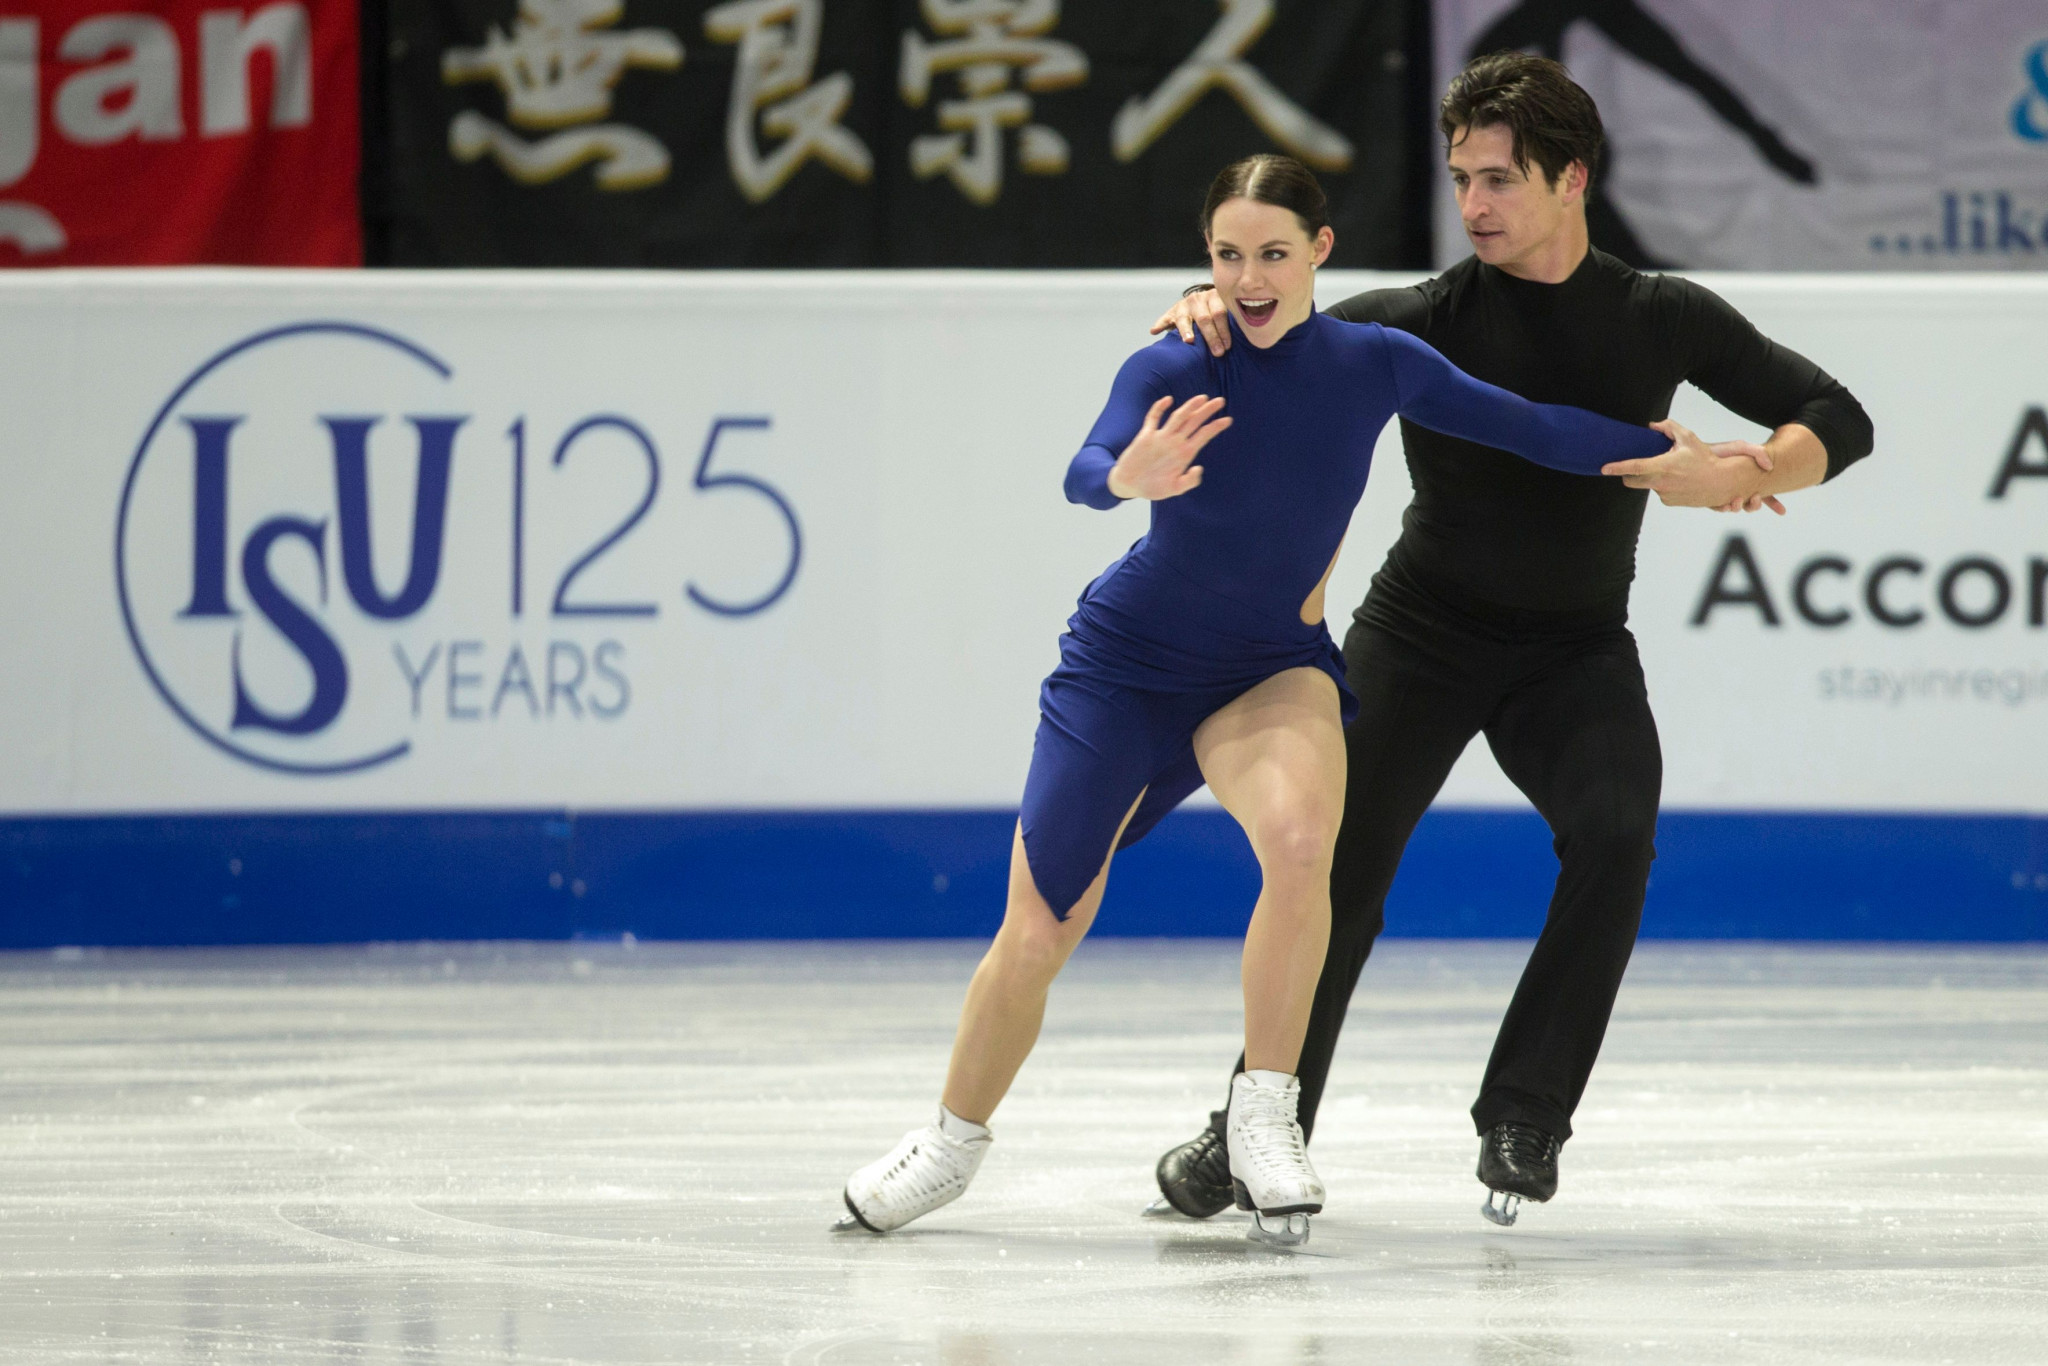 Three-time reigning world champions Tessa Virtue and Scott Moir will be aiming for their seventh Skate Canada International ice dance title ©Getty Images